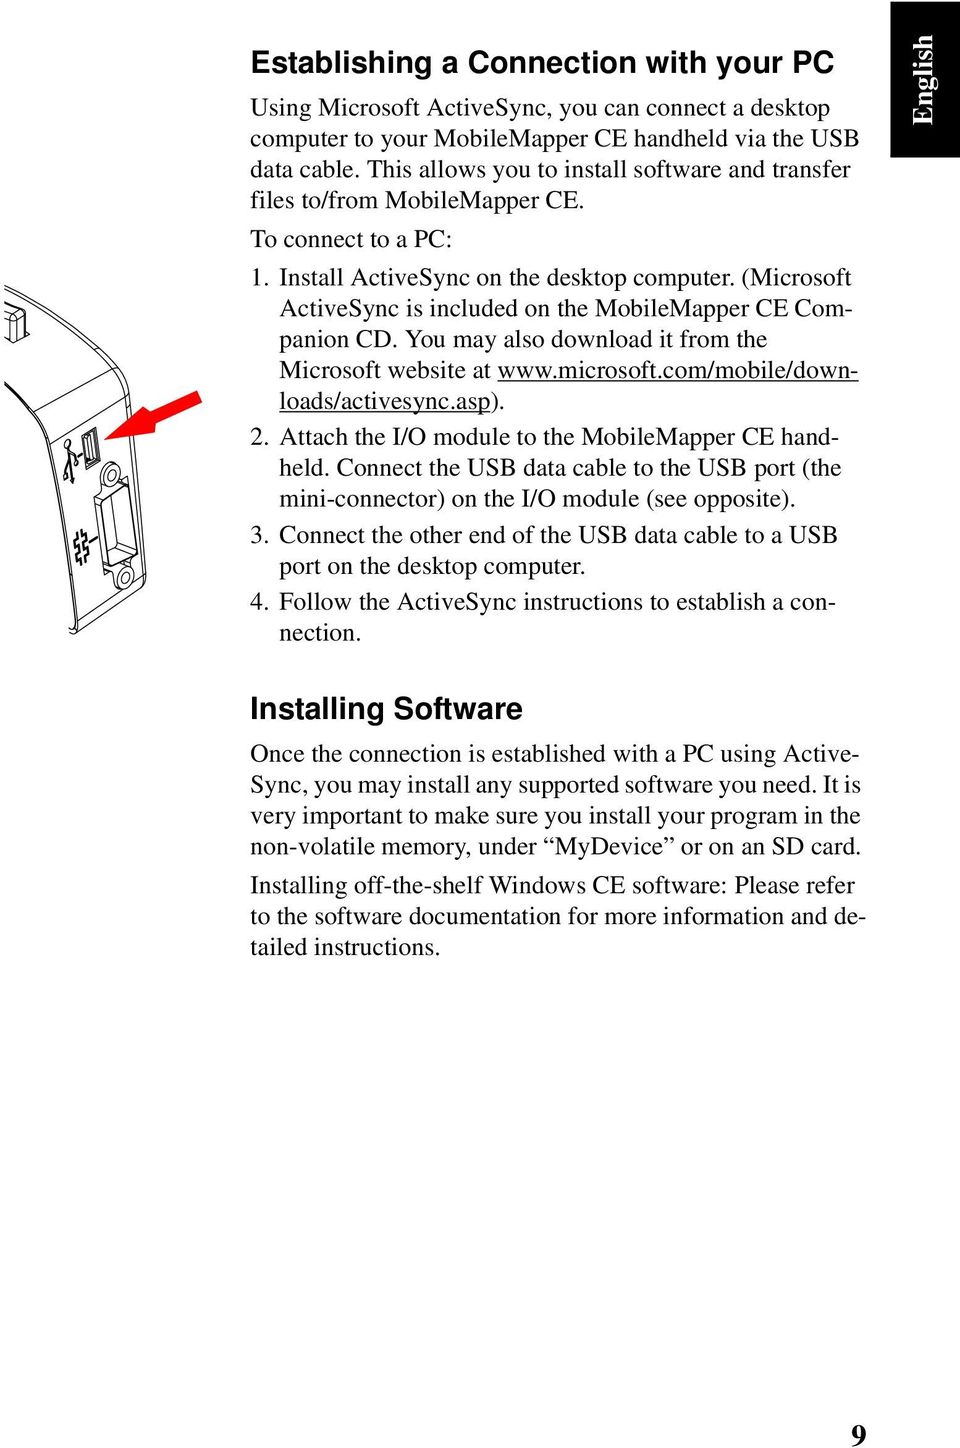 (Microsoft ActiveSync is included on the MobileMapper CE Companion CD. You may also download it from the Microsoft website at www.microsoft.com/mobile/downloads/activesync.asp). 2.